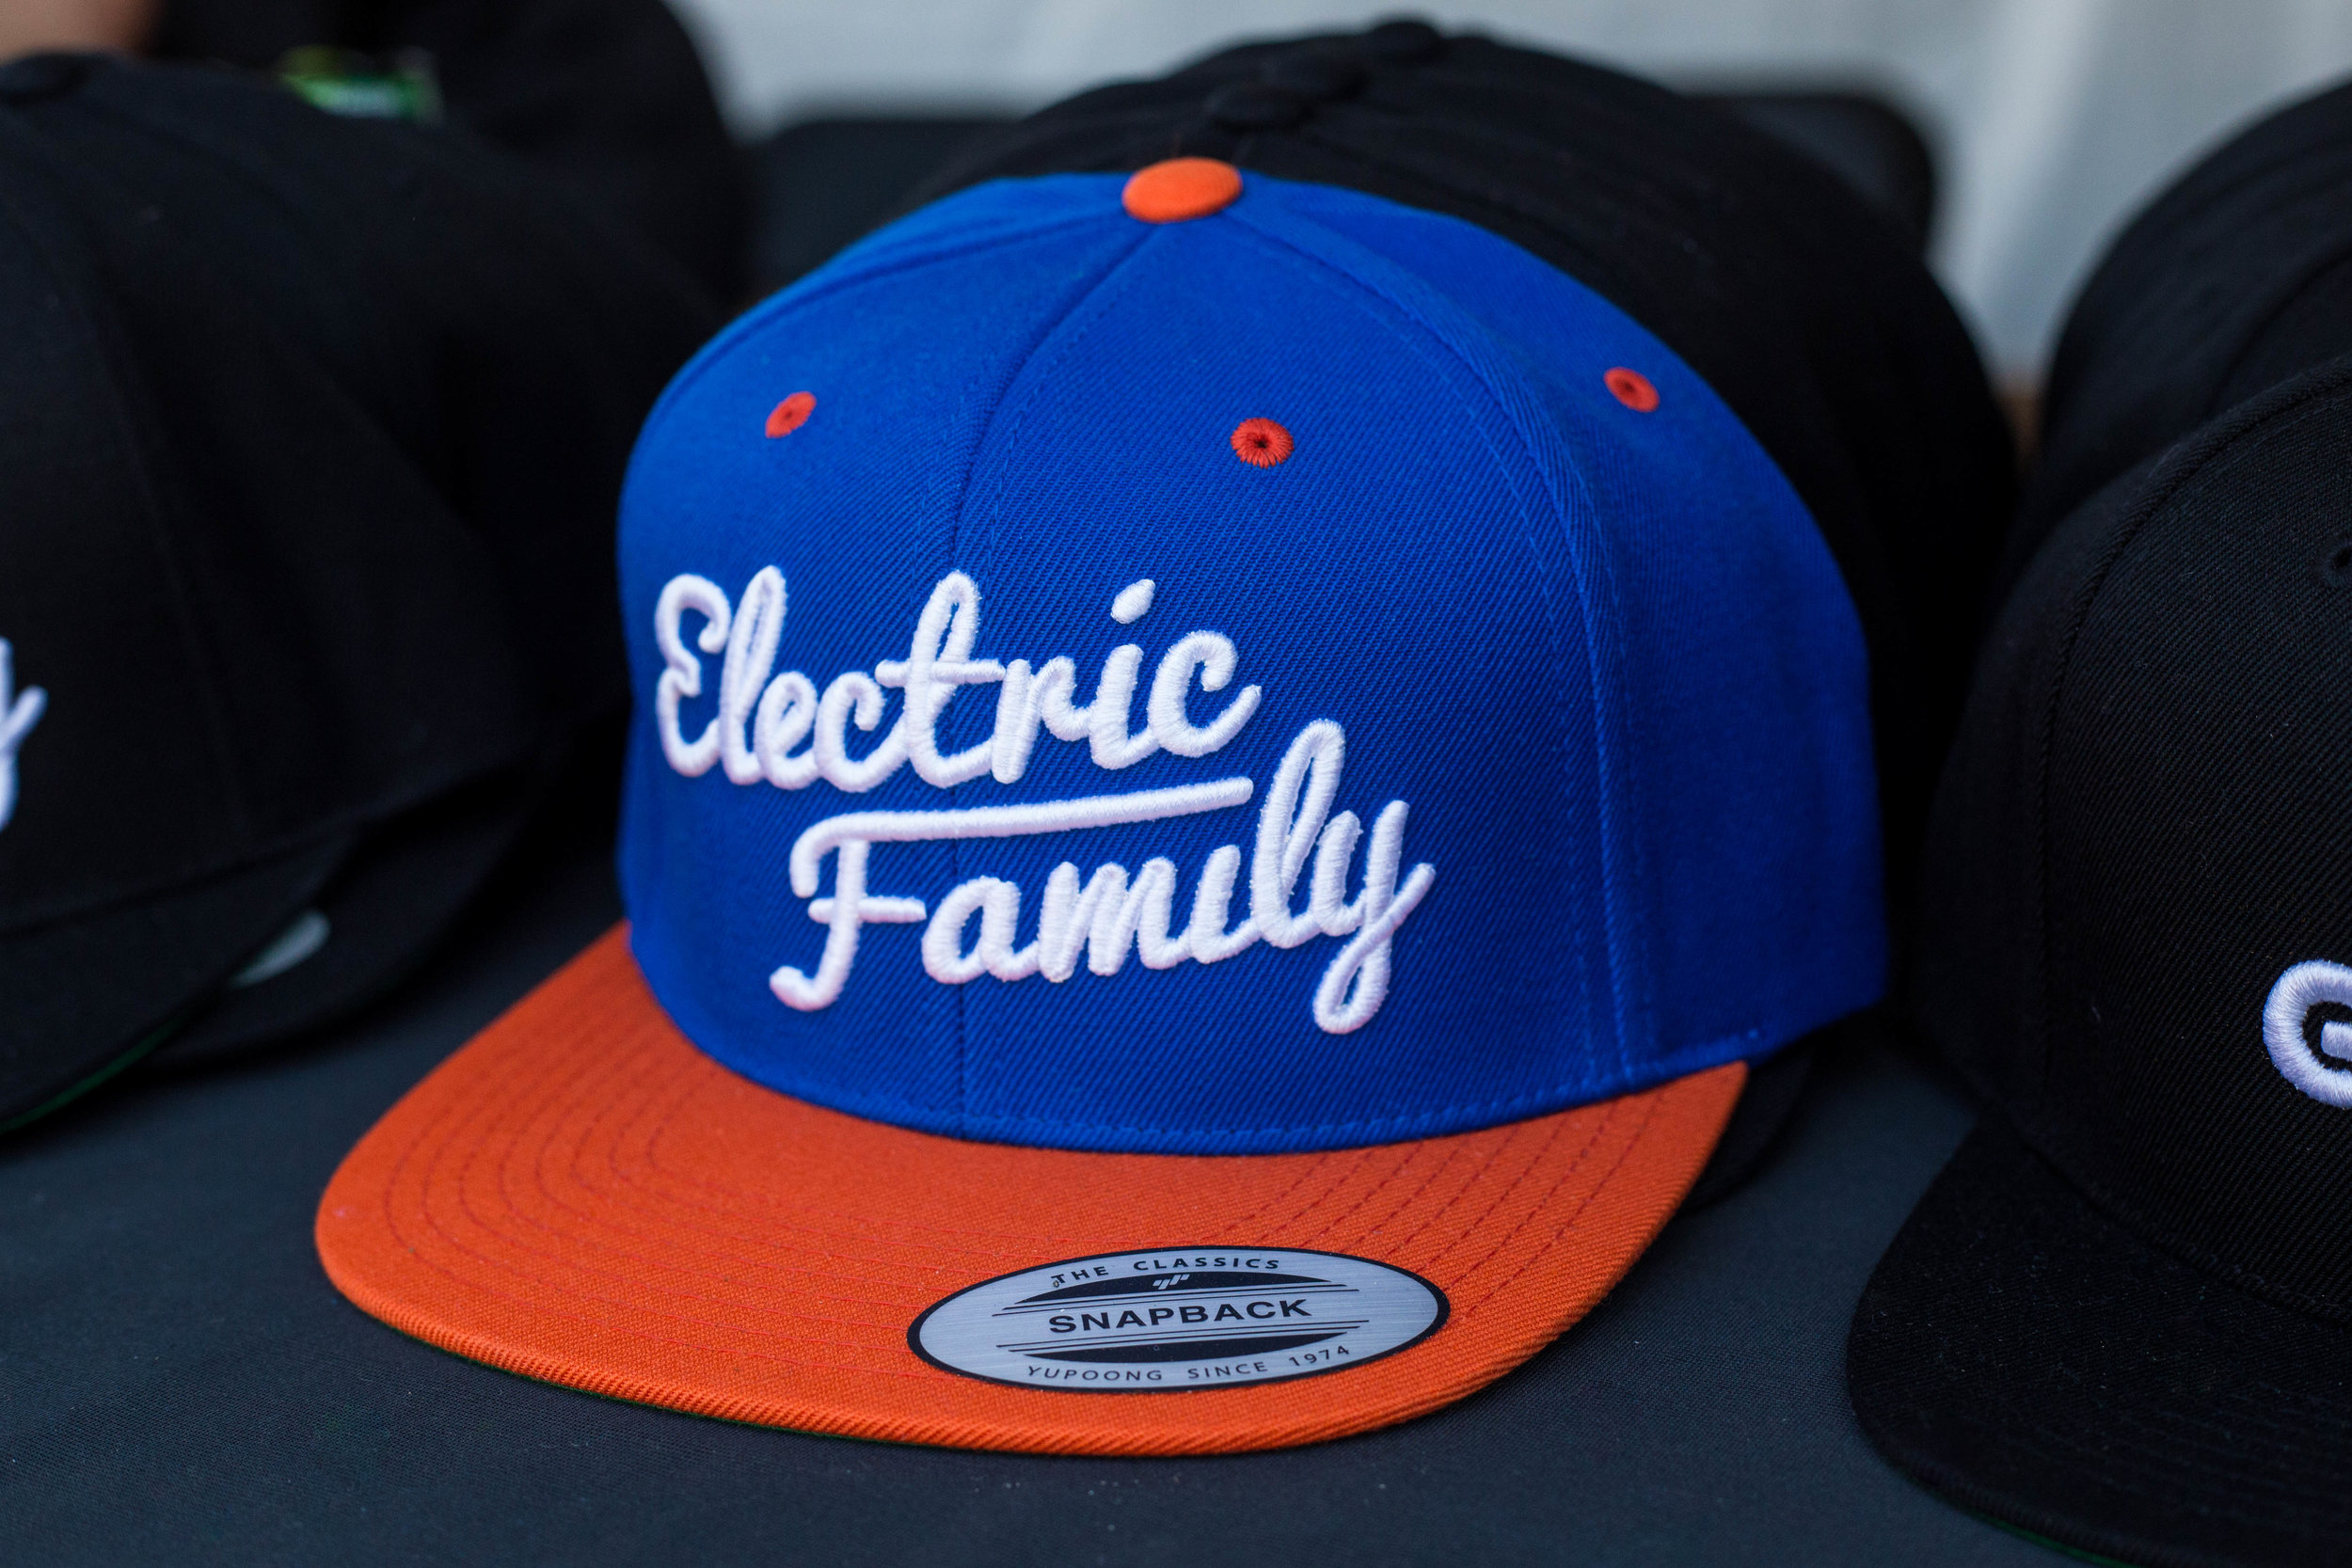 @electricfamily